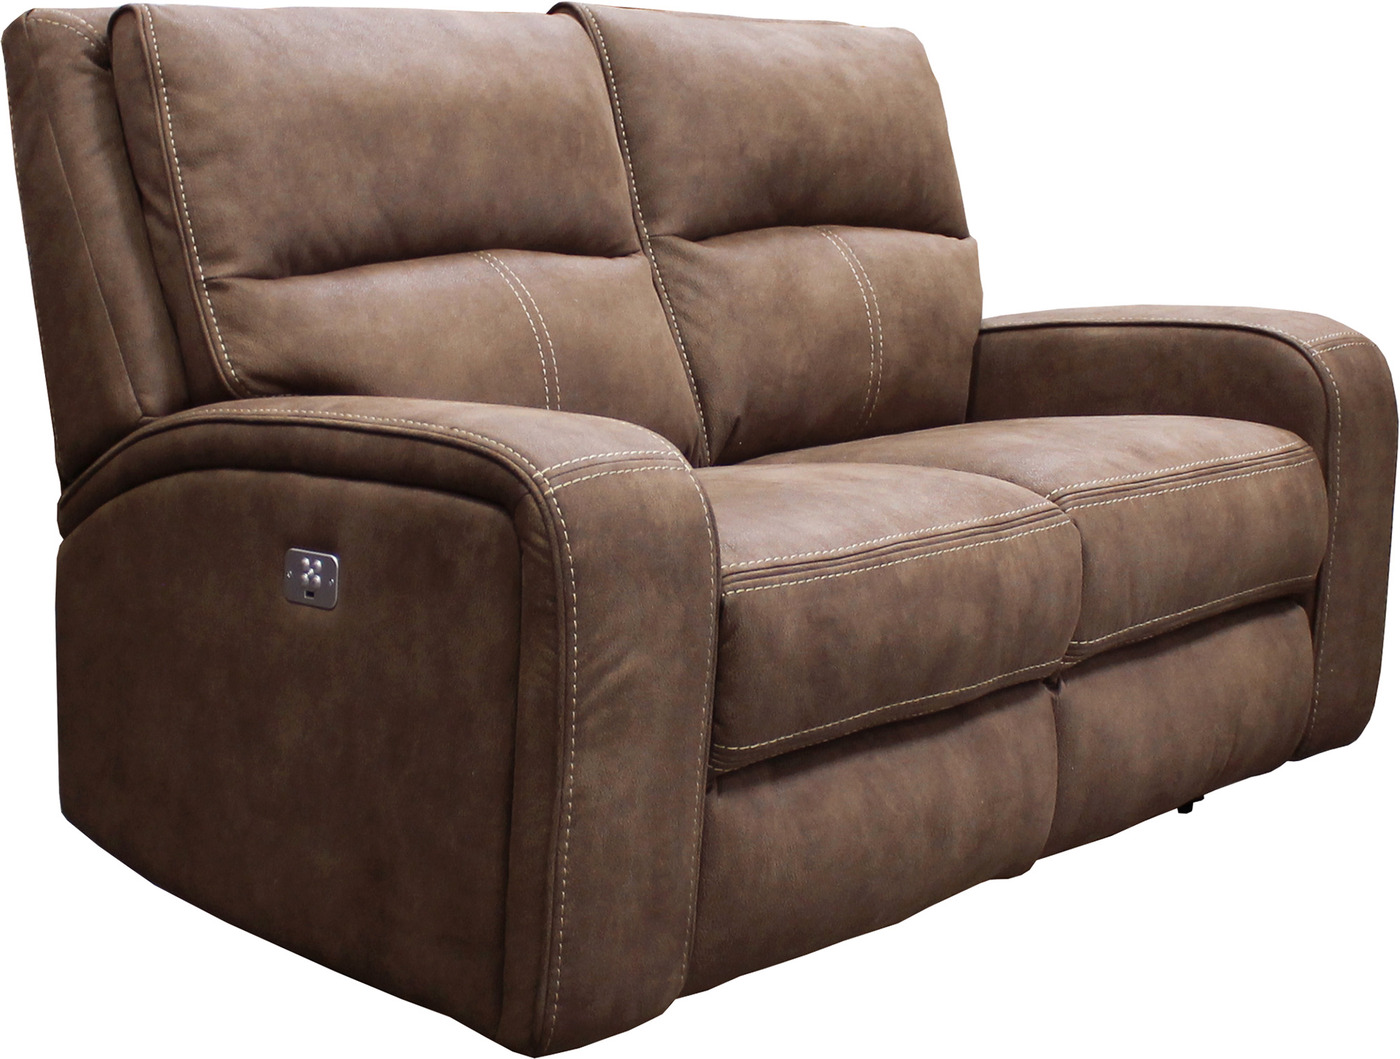 Incredible Details About Polaris Kahlua Power Dual Reclining Loveseat W Usb Charging Port Ocoug Best Dining Table And Chair Ideas Images Ocougorg